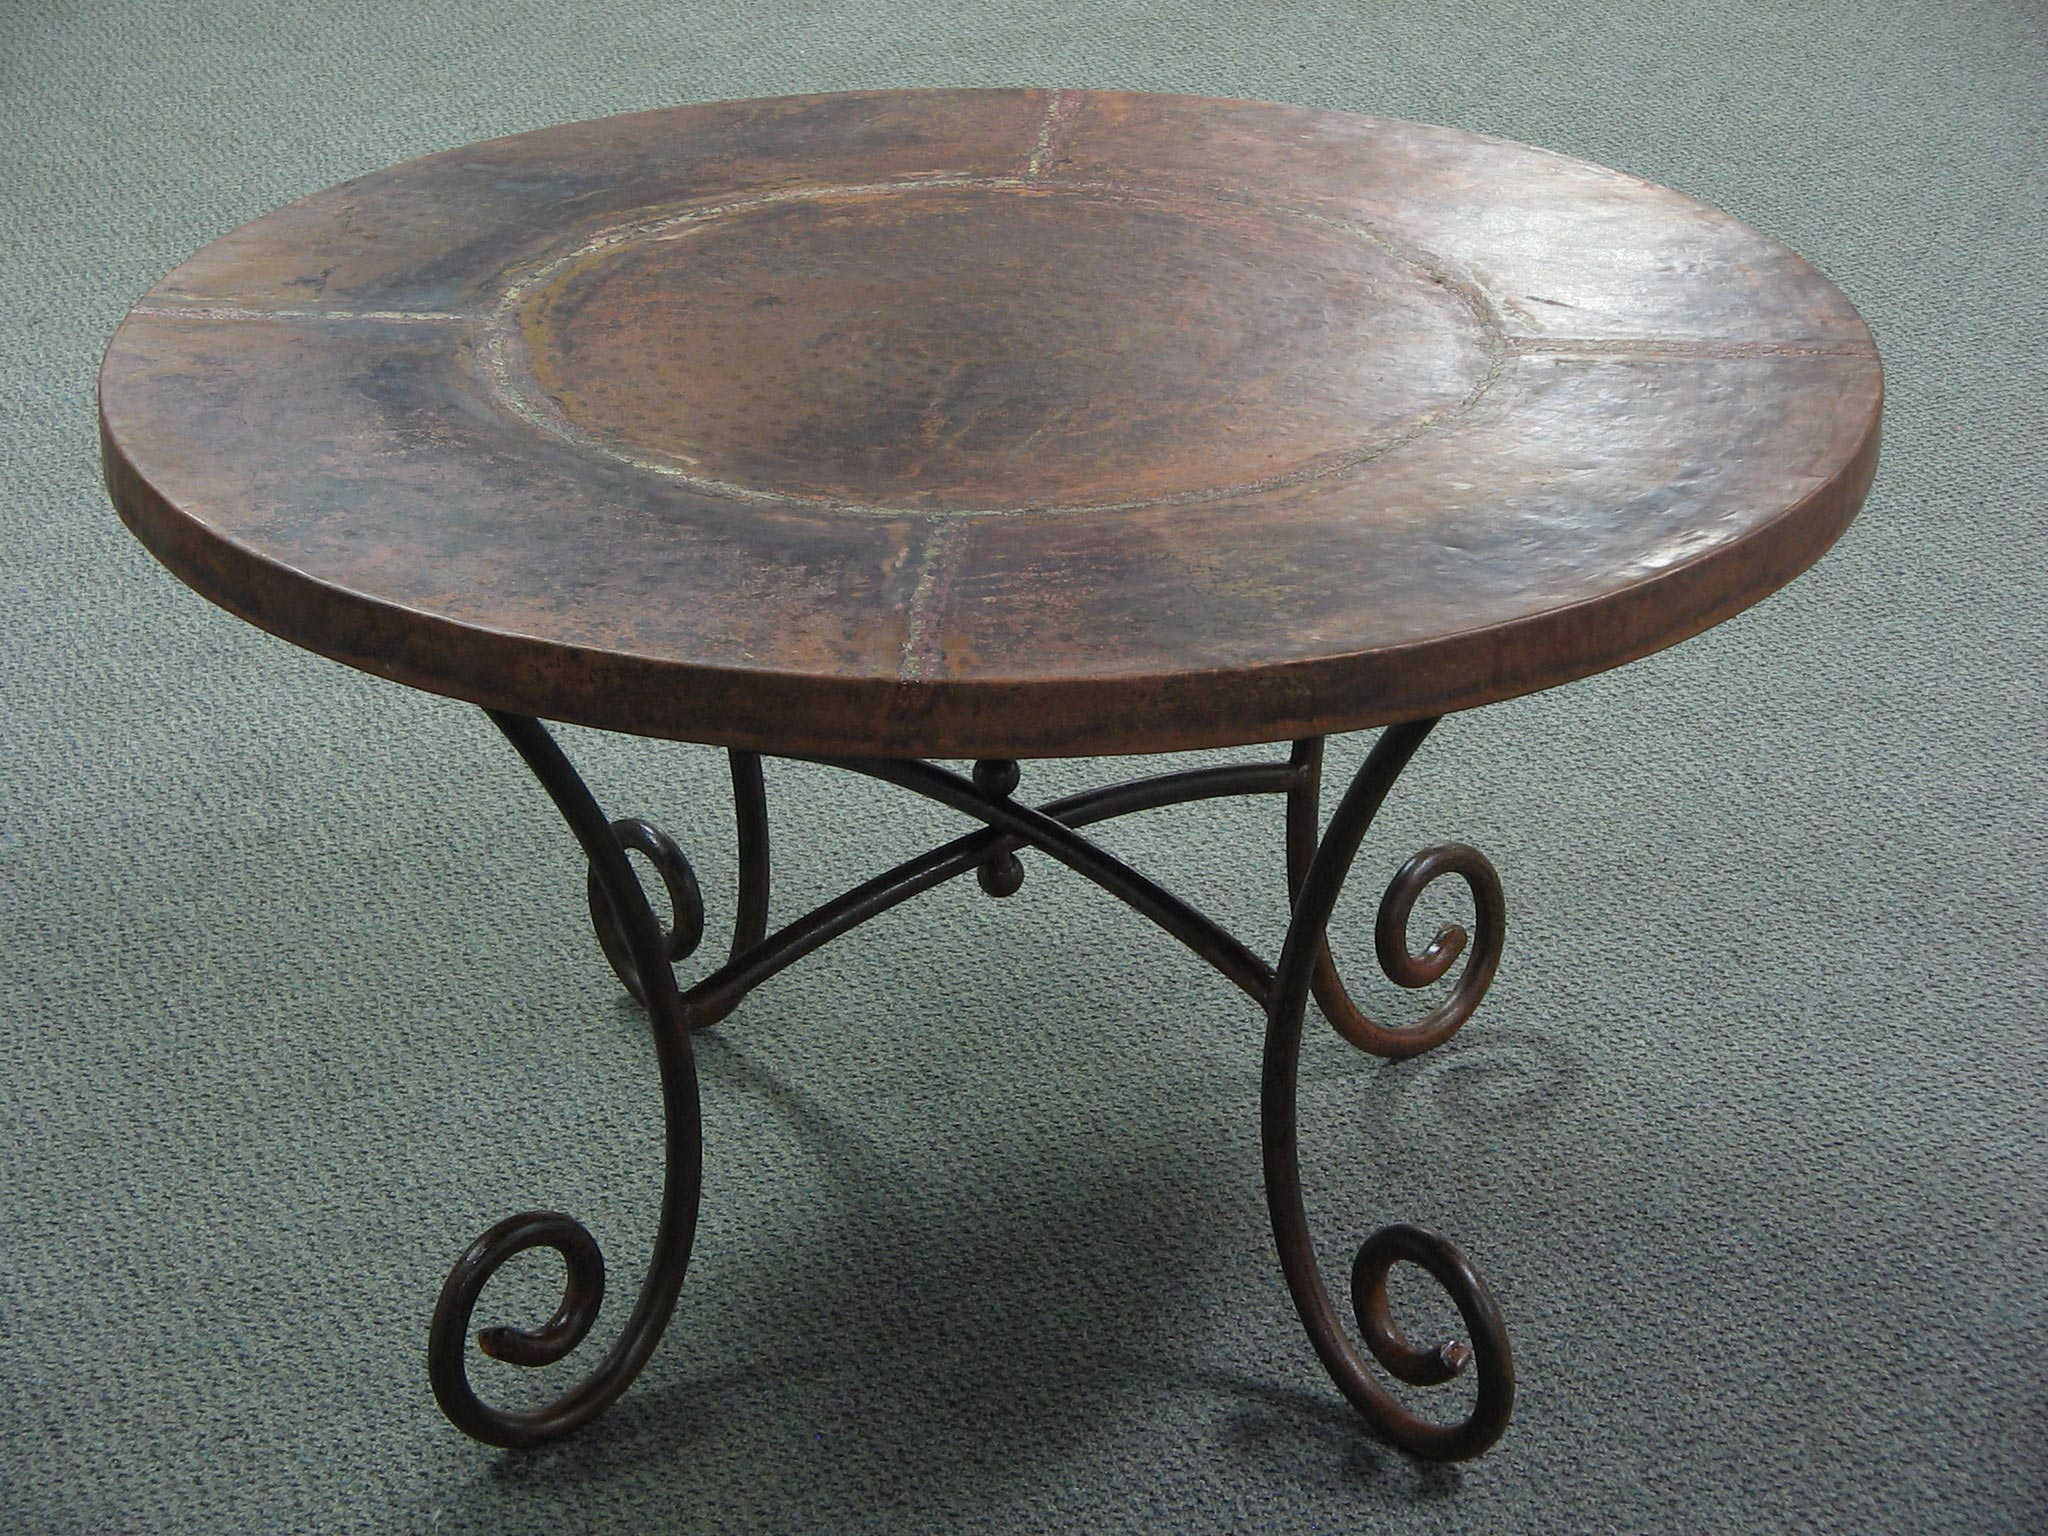 30 inch round coffee table 09